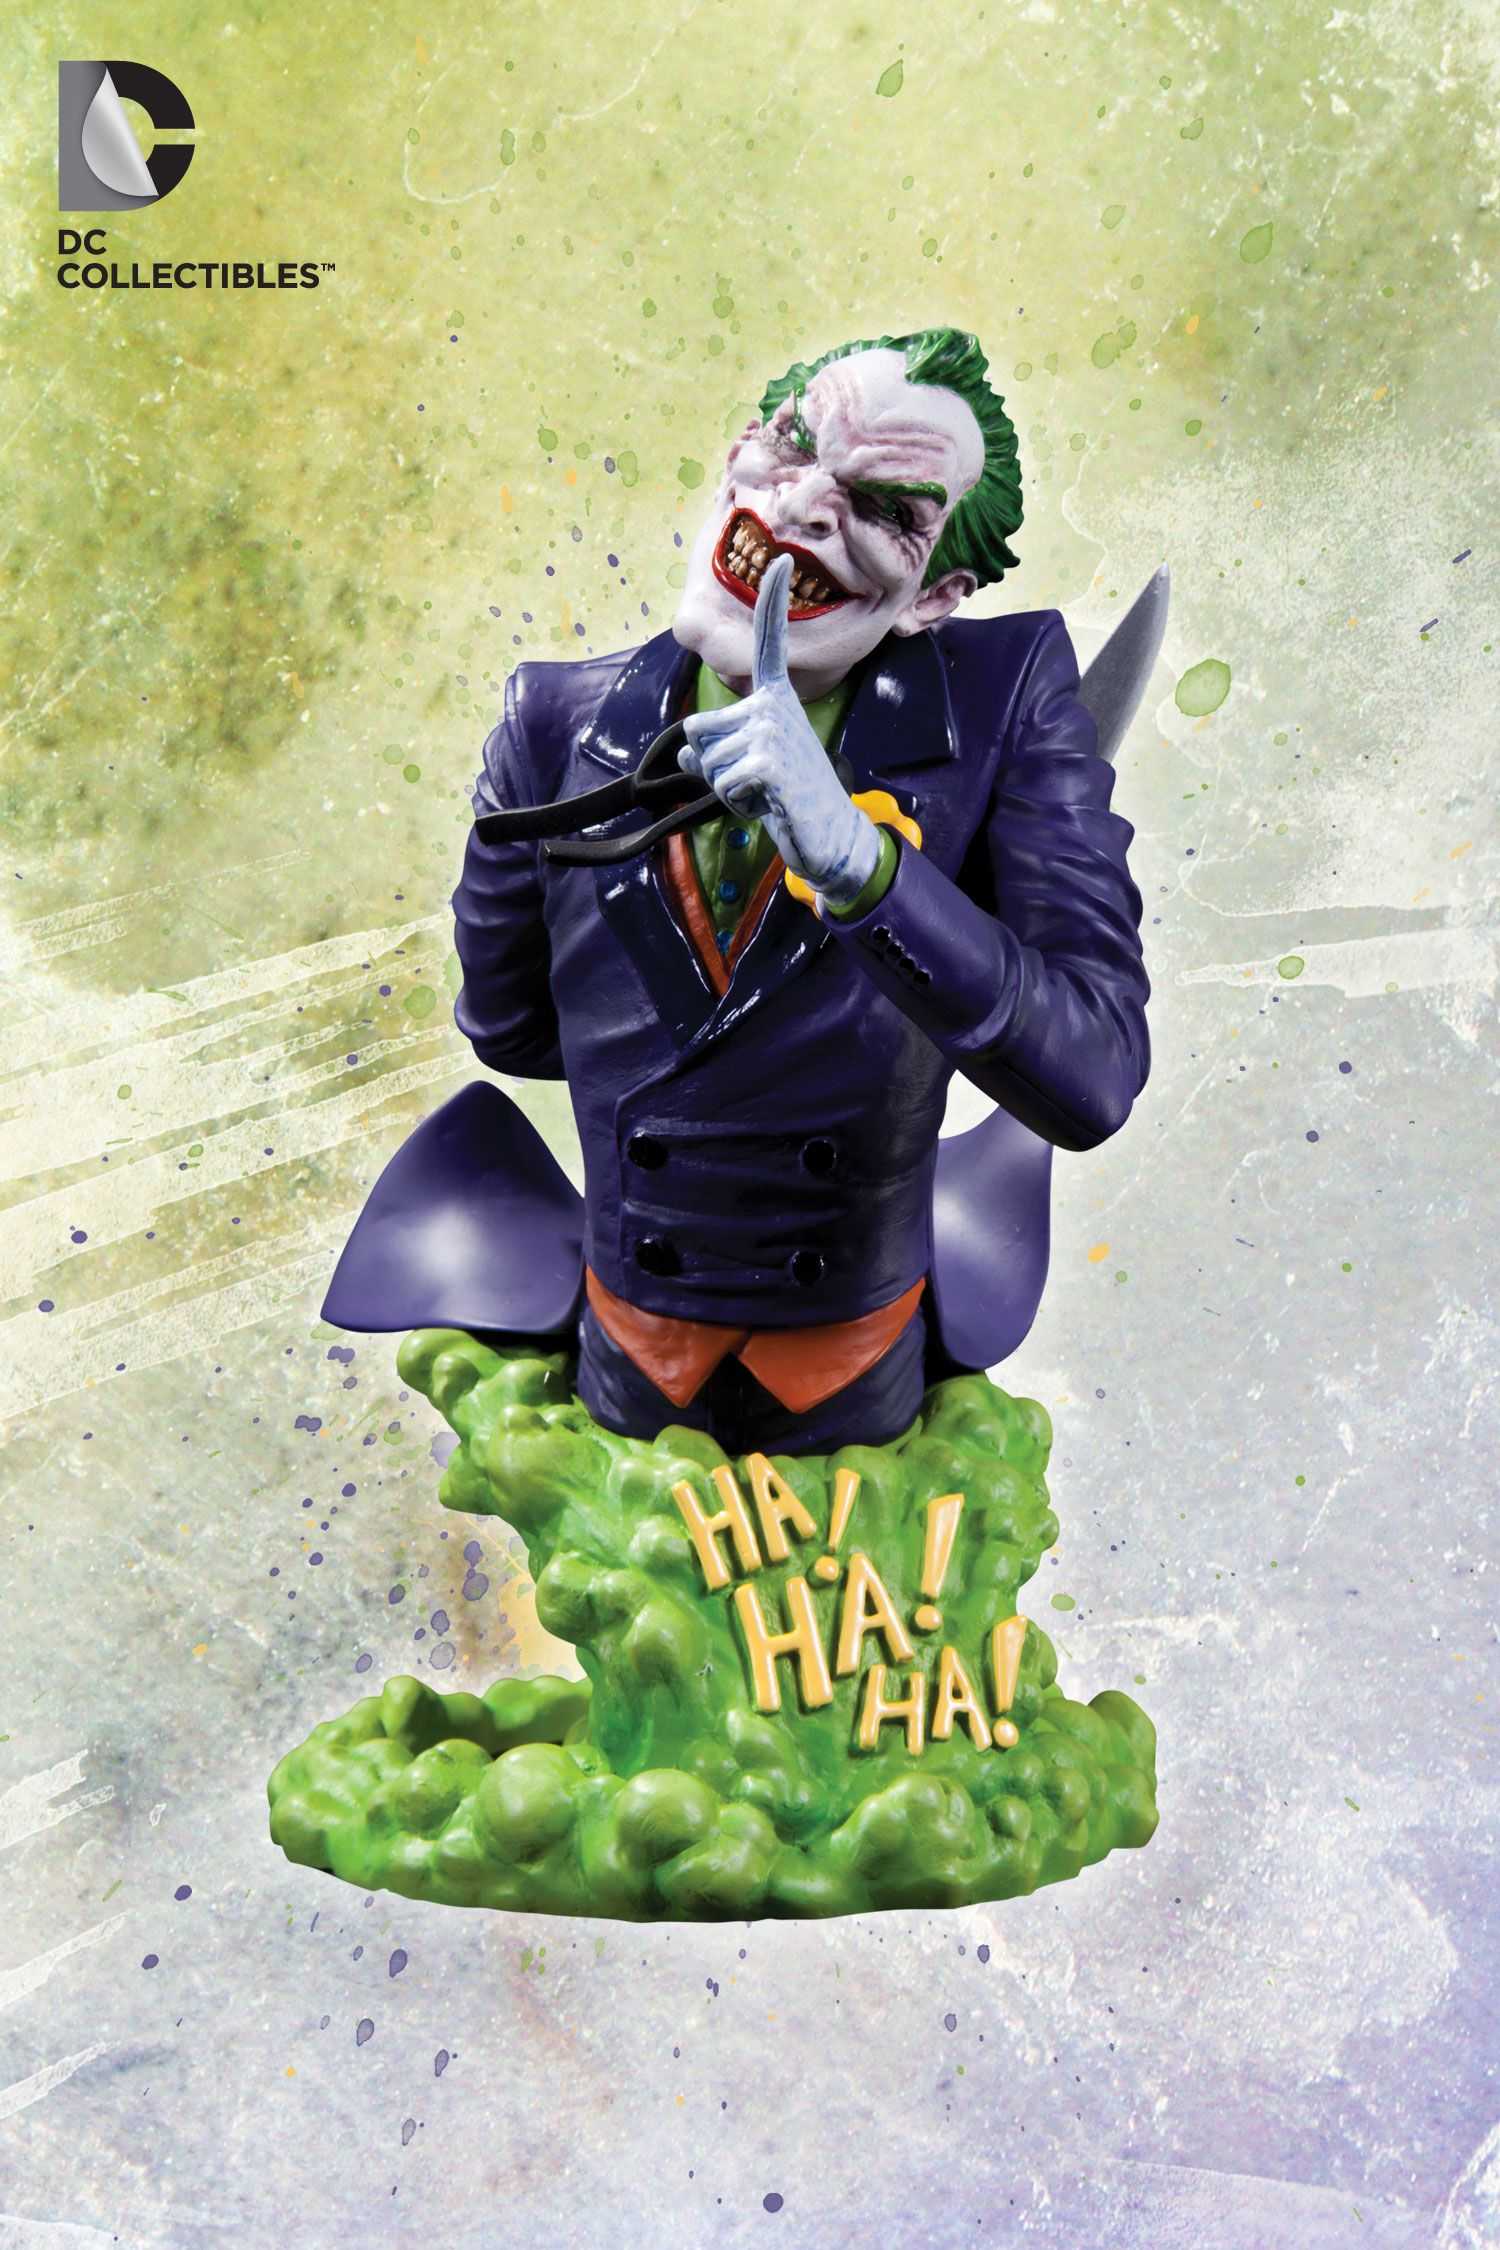 [DC COLLECTIBLES] DC Comics Super Villains: The Joker Bust